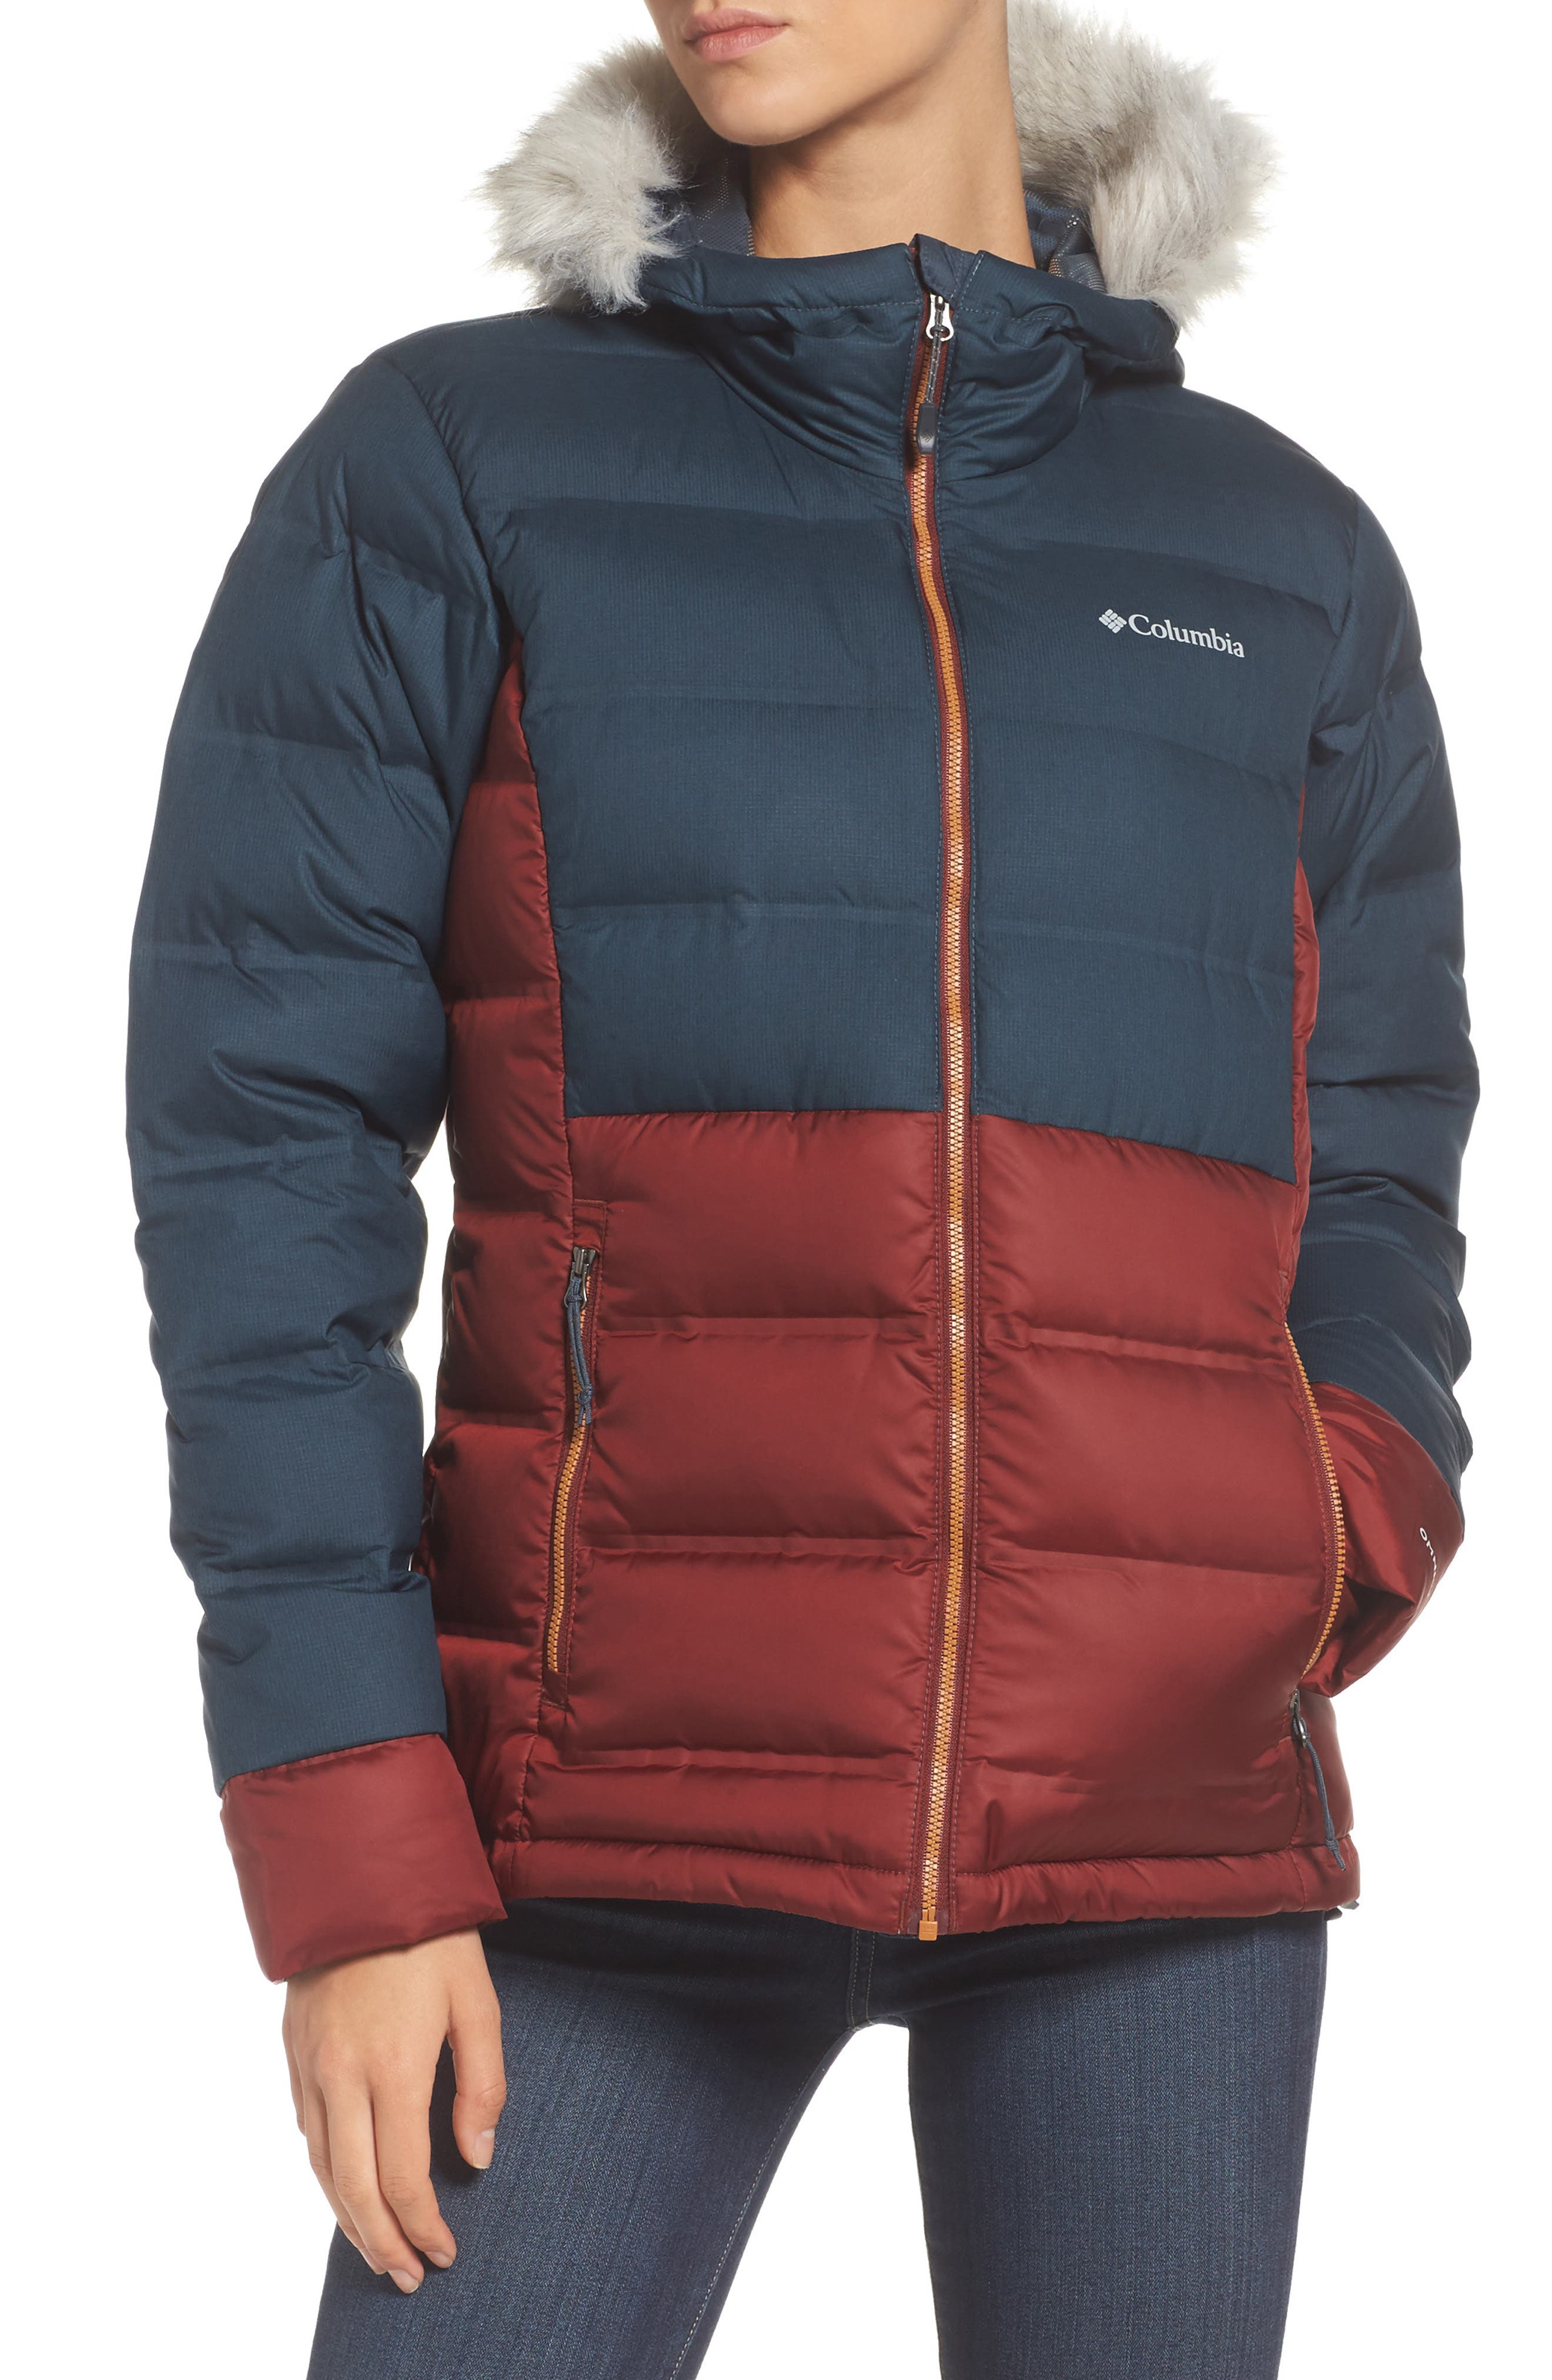 Columbia North Protection Water Resistant Jacket